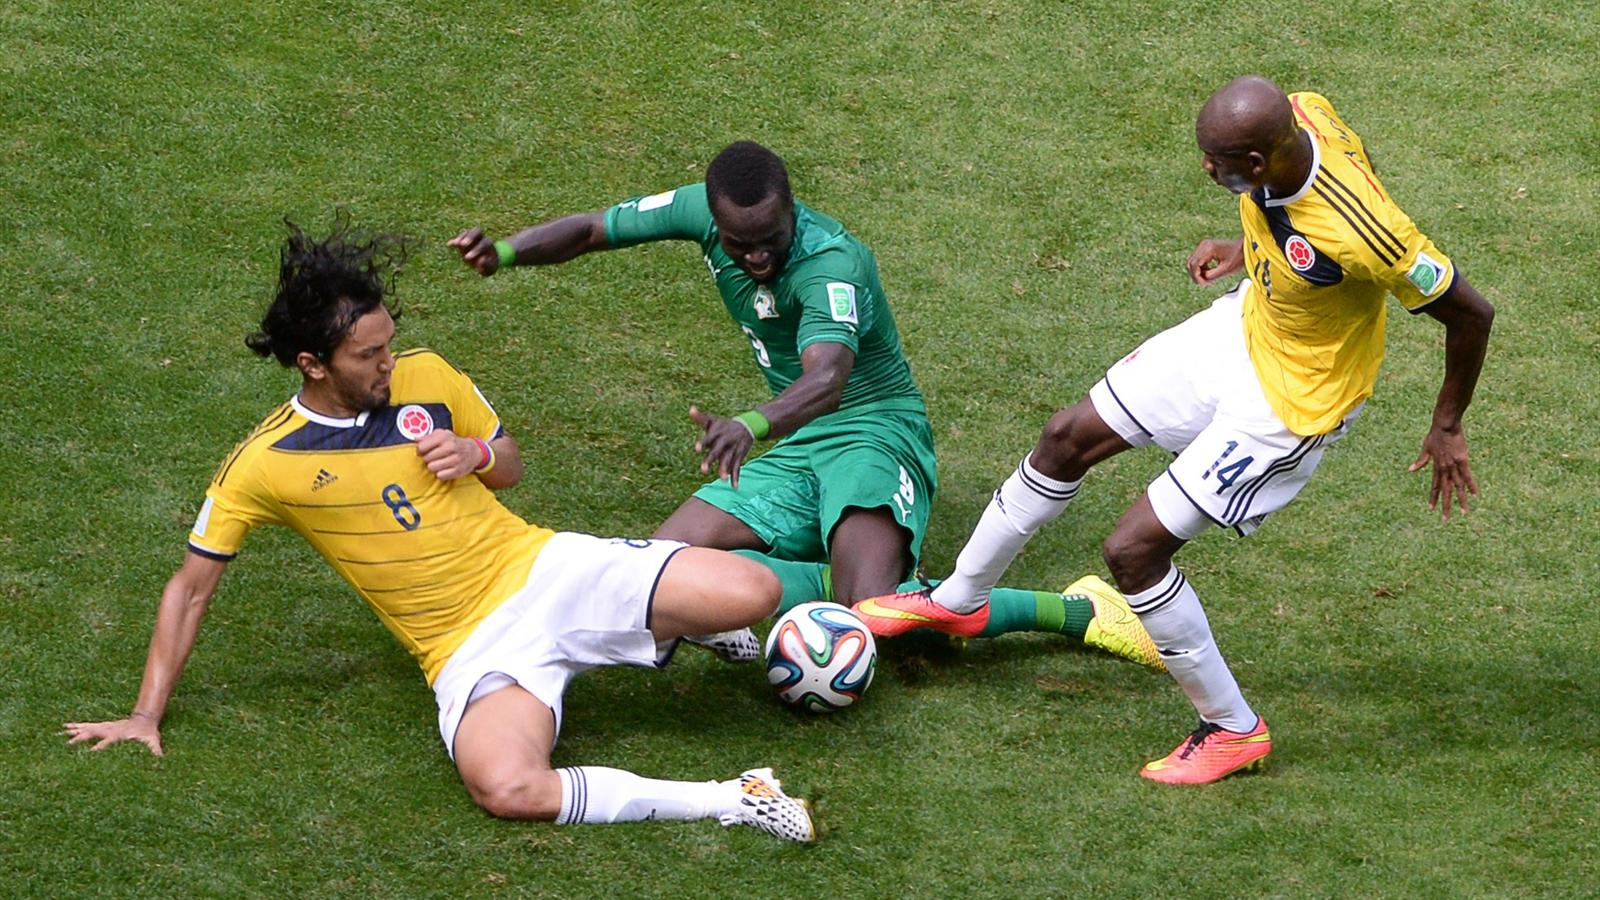 Ivory Coast's midfielder Ismael Cheick Tiote challenges Colombia's midfielder Abel Aguilar (L) and forward Victor Ibarbo